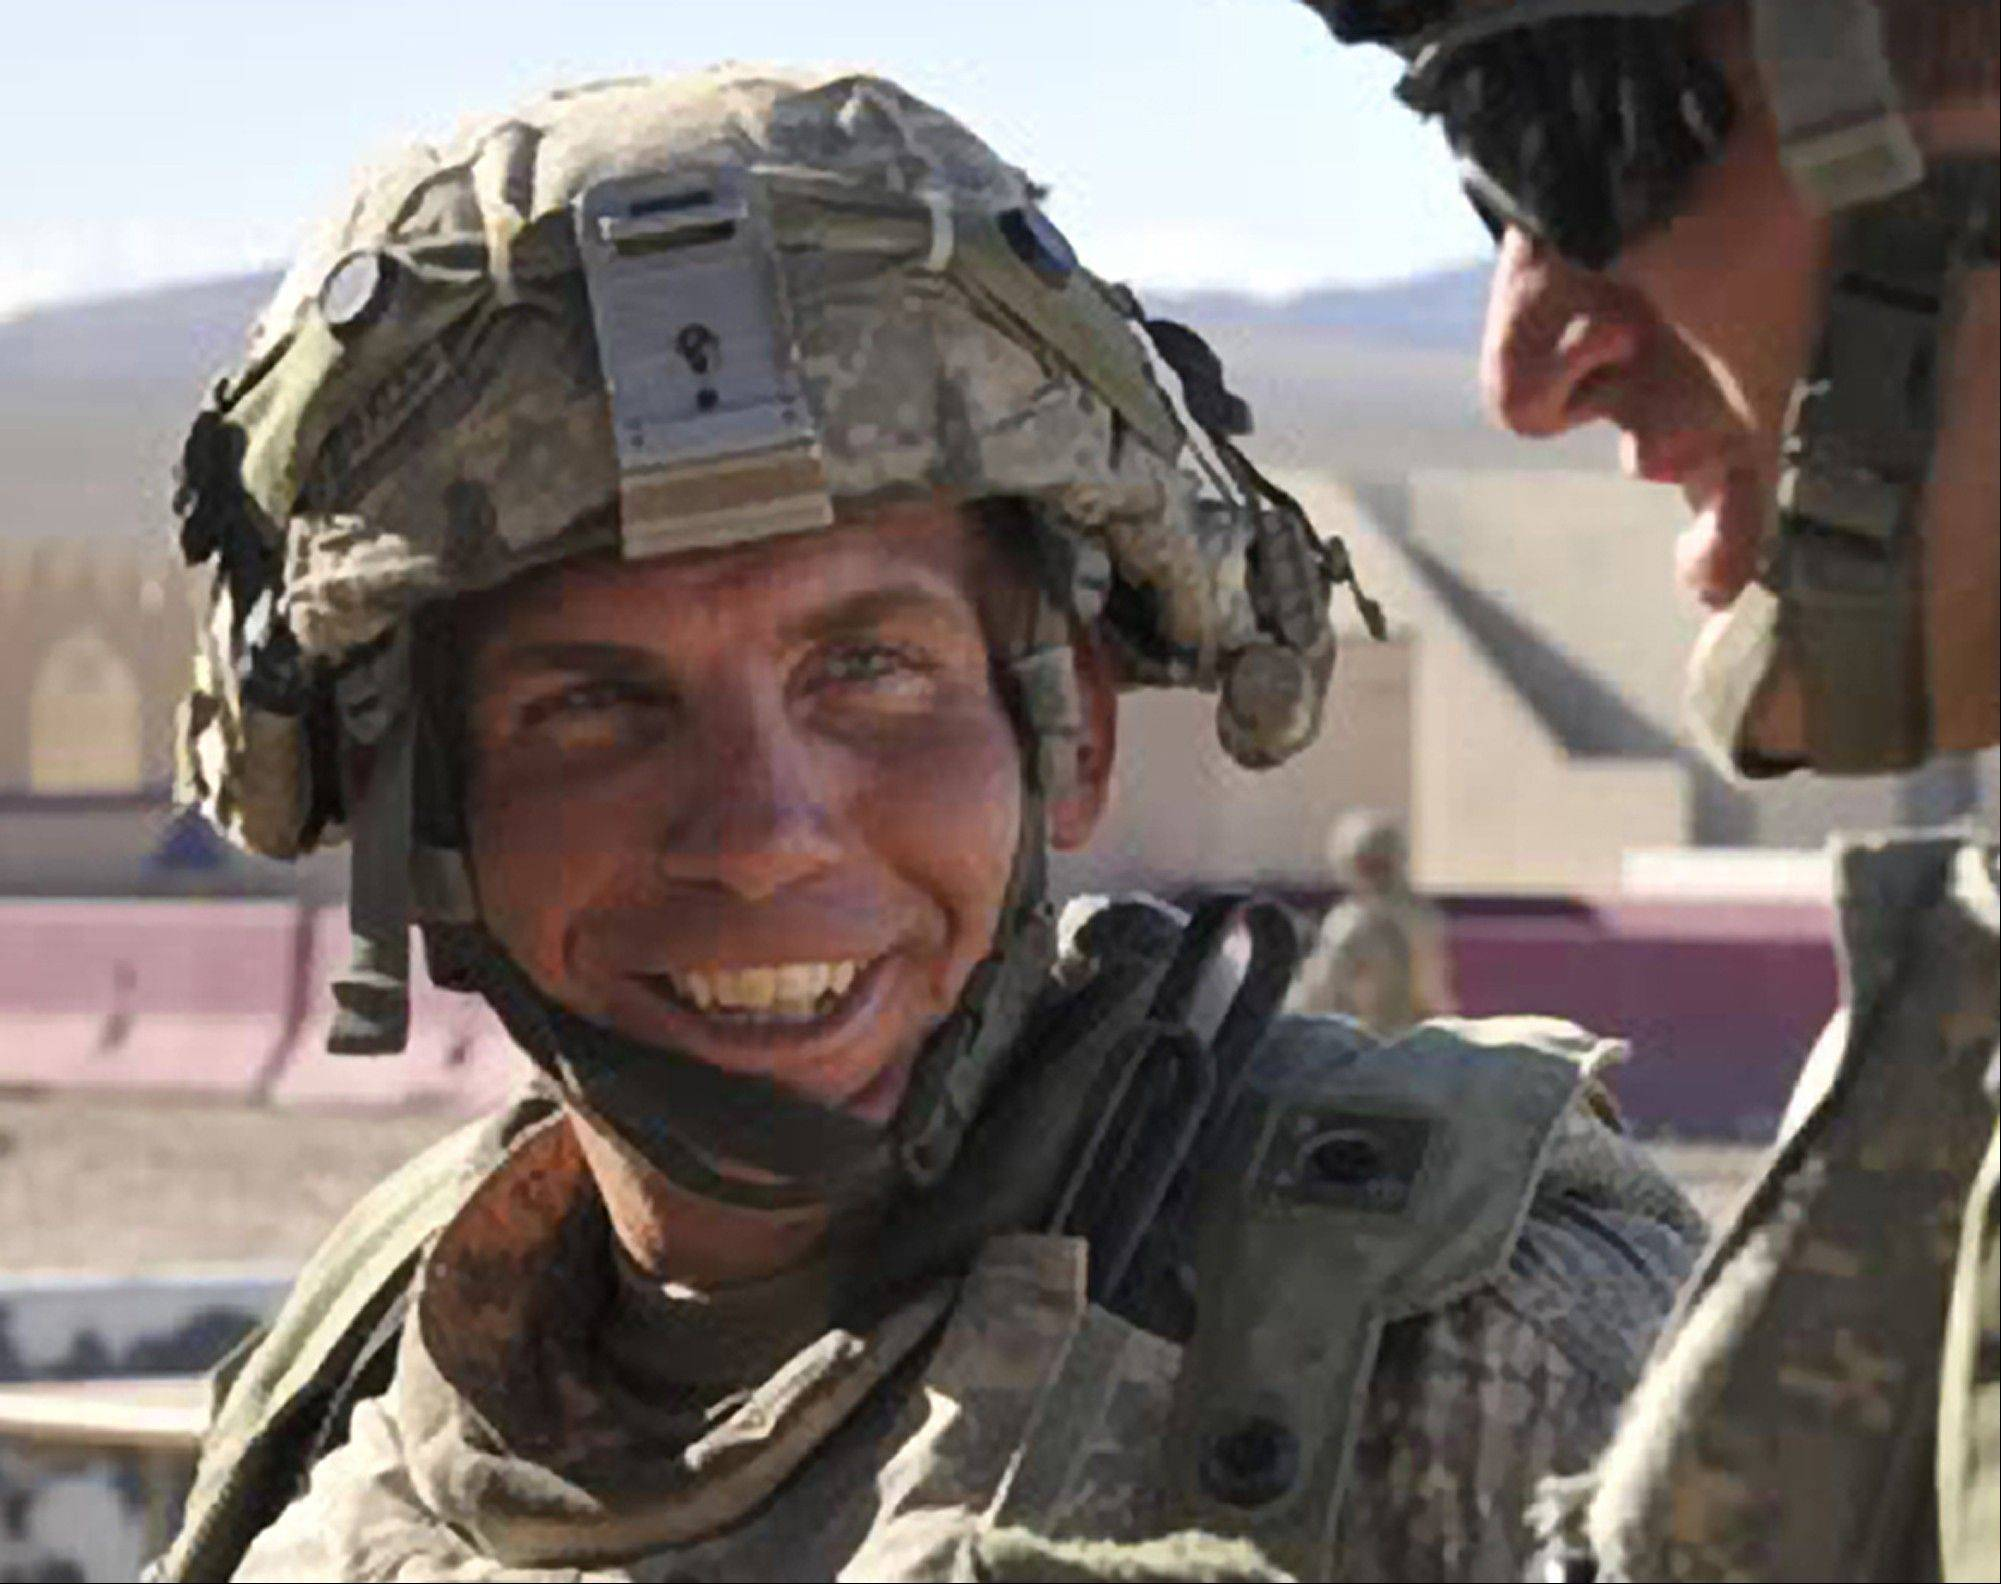 In this Aug. 23, 2011, file photo provided by the Defense Video & Imagery Distribution System, Sgt. Robert Bales takes part in exercises at the National Training Center at Fort Irwin, Calif. It is still not known if Bales, who allegedly massacred 17 Afghans, was ever diagnosed with post-traumatic stress disorder, but even if he had been that alone would not have prevented him from being sent back to war. The Army diagnosed 76,176 soldiers with PTSD between 2000 and 2011. Many returned to the battlefield after mental health providers determined their treatment worked and their symptoms had gone into remission. The case of Bales has sparked debate about whether the practice needs to be re-examined. The Army is reviewing all its mental health programs and its screening process in light of the March 11 shooting spree.